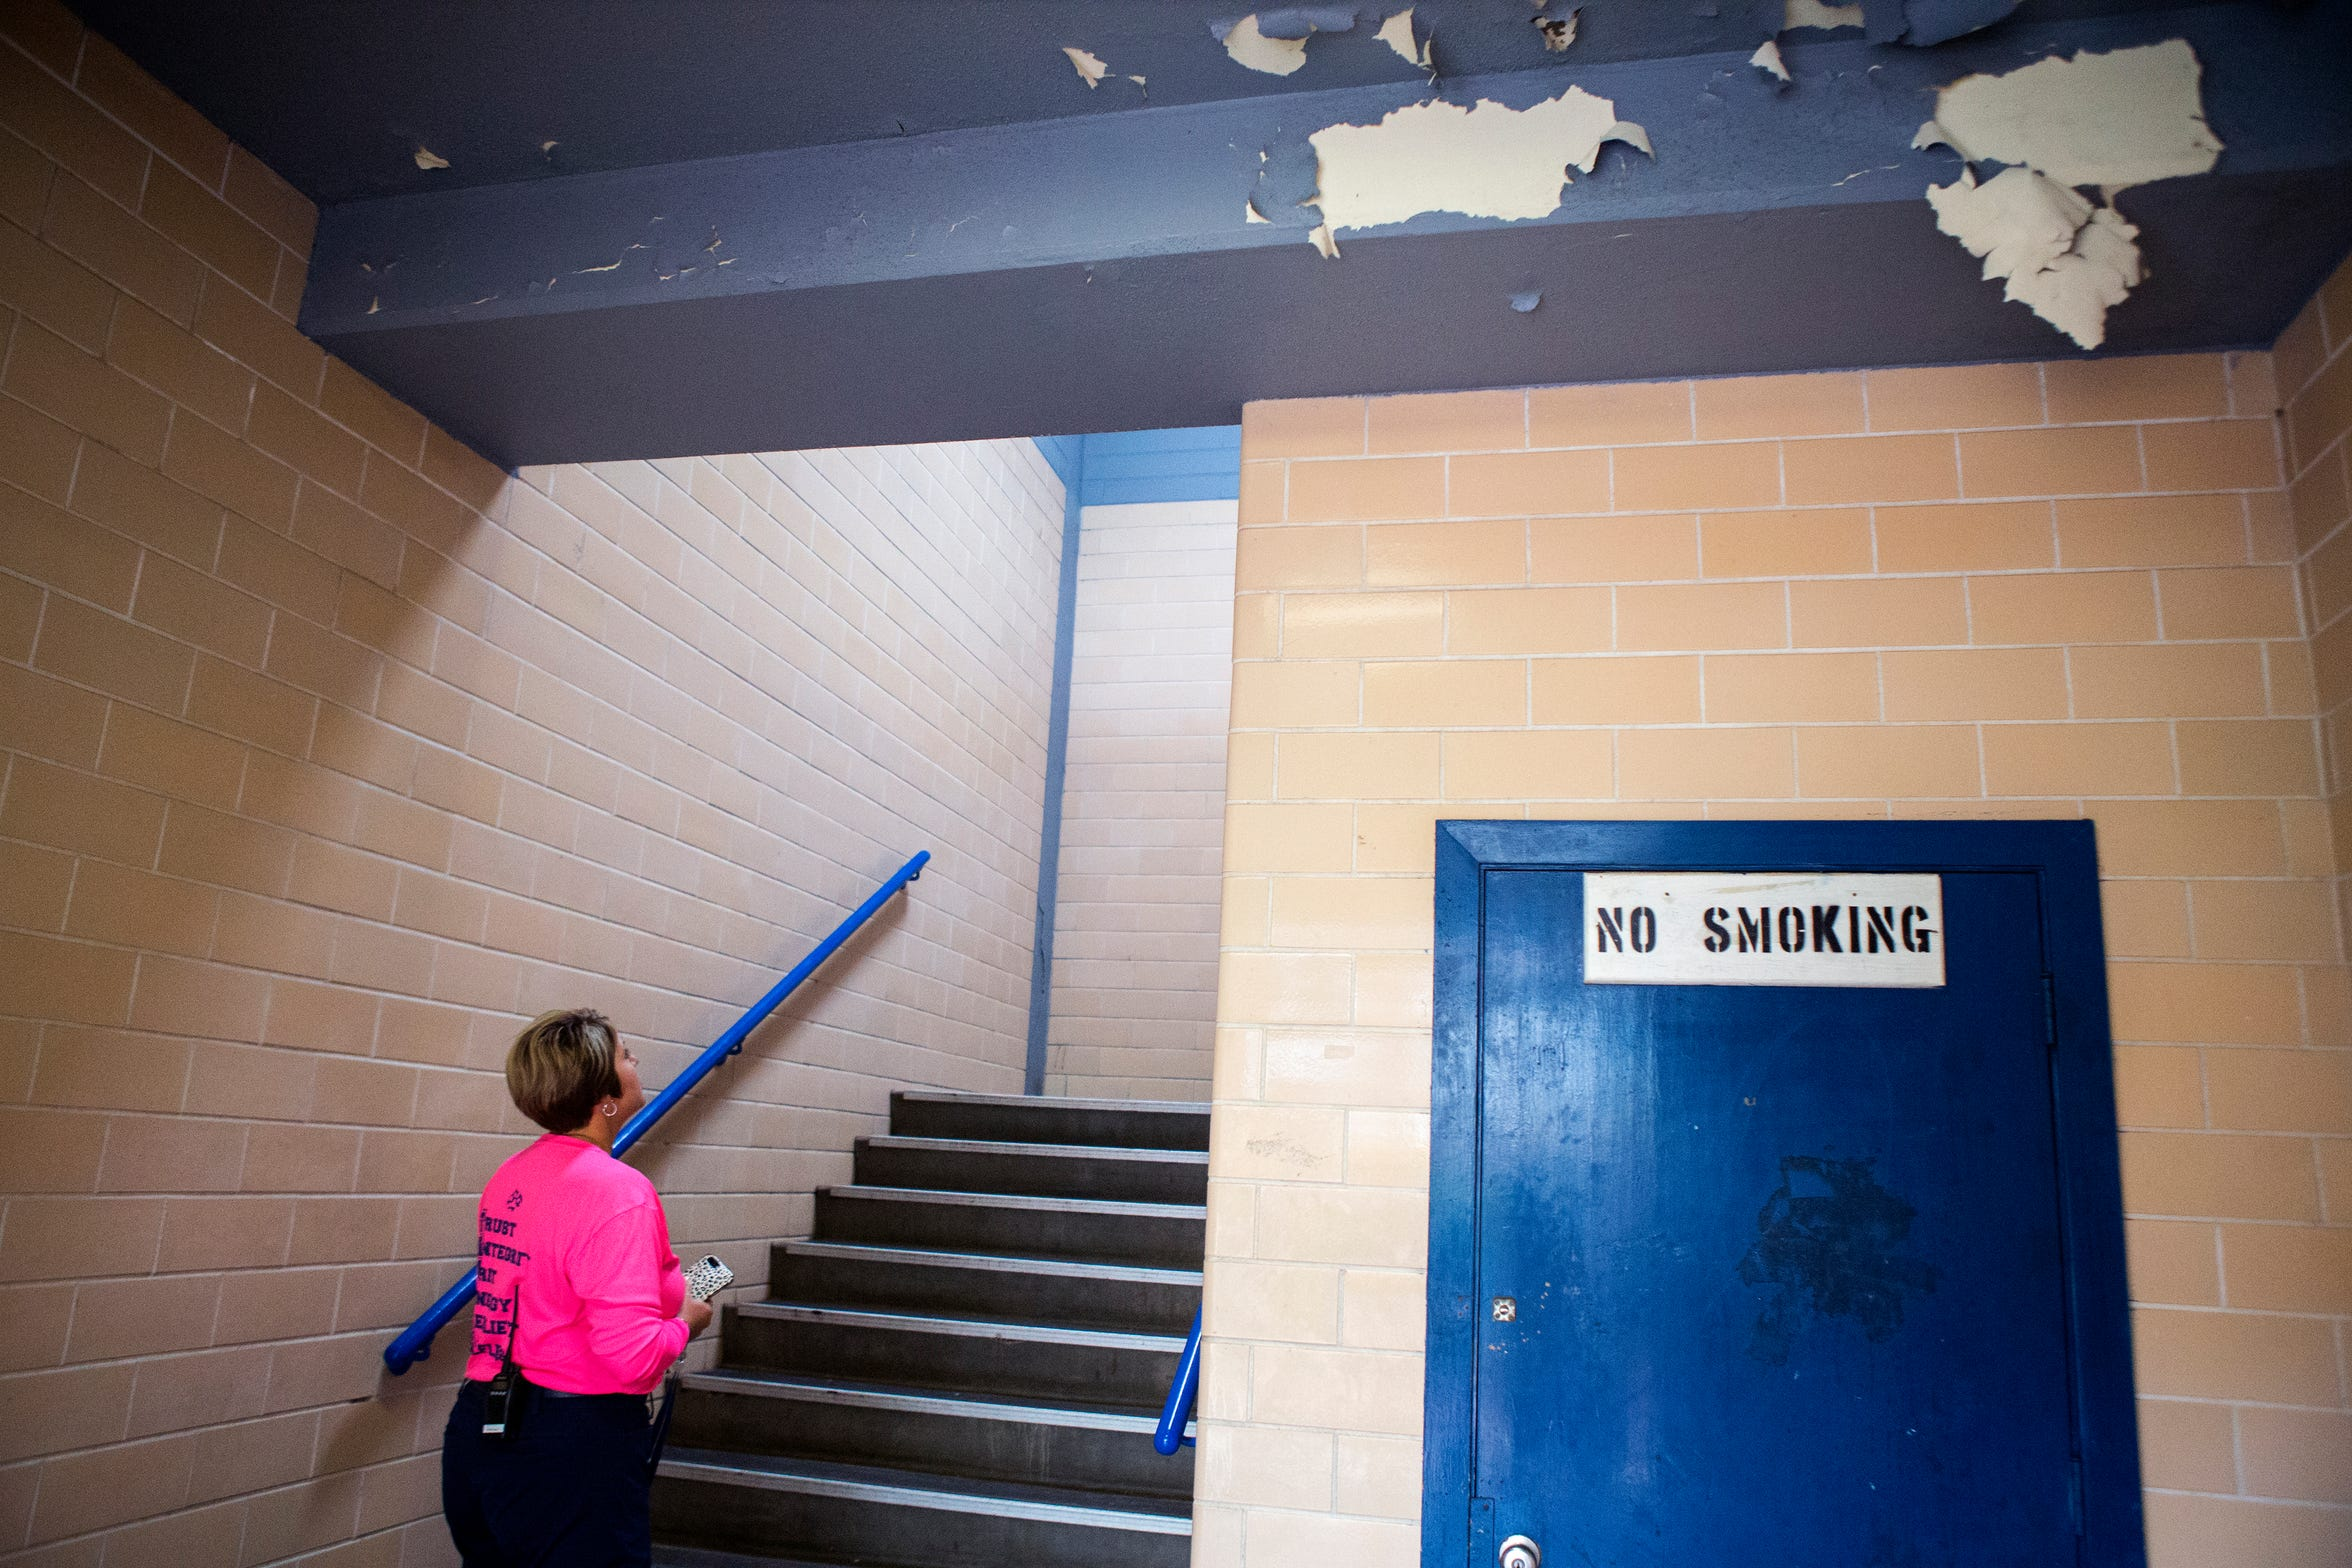 Carroll High School has multiple staircases, which open to the outdoors and are exposed to the elements. During rainy days, there are safety concerns that students may slip and fall, said principal Kelly Manlove. The Corpus Christi ISD Board of Trustees has called for a $210,770,000 bond referendum which would allow for a new campus to be built on Saratoga Boulevard and Weber Road. Carroll High School was built in 1957. The bond also includes several other projects.